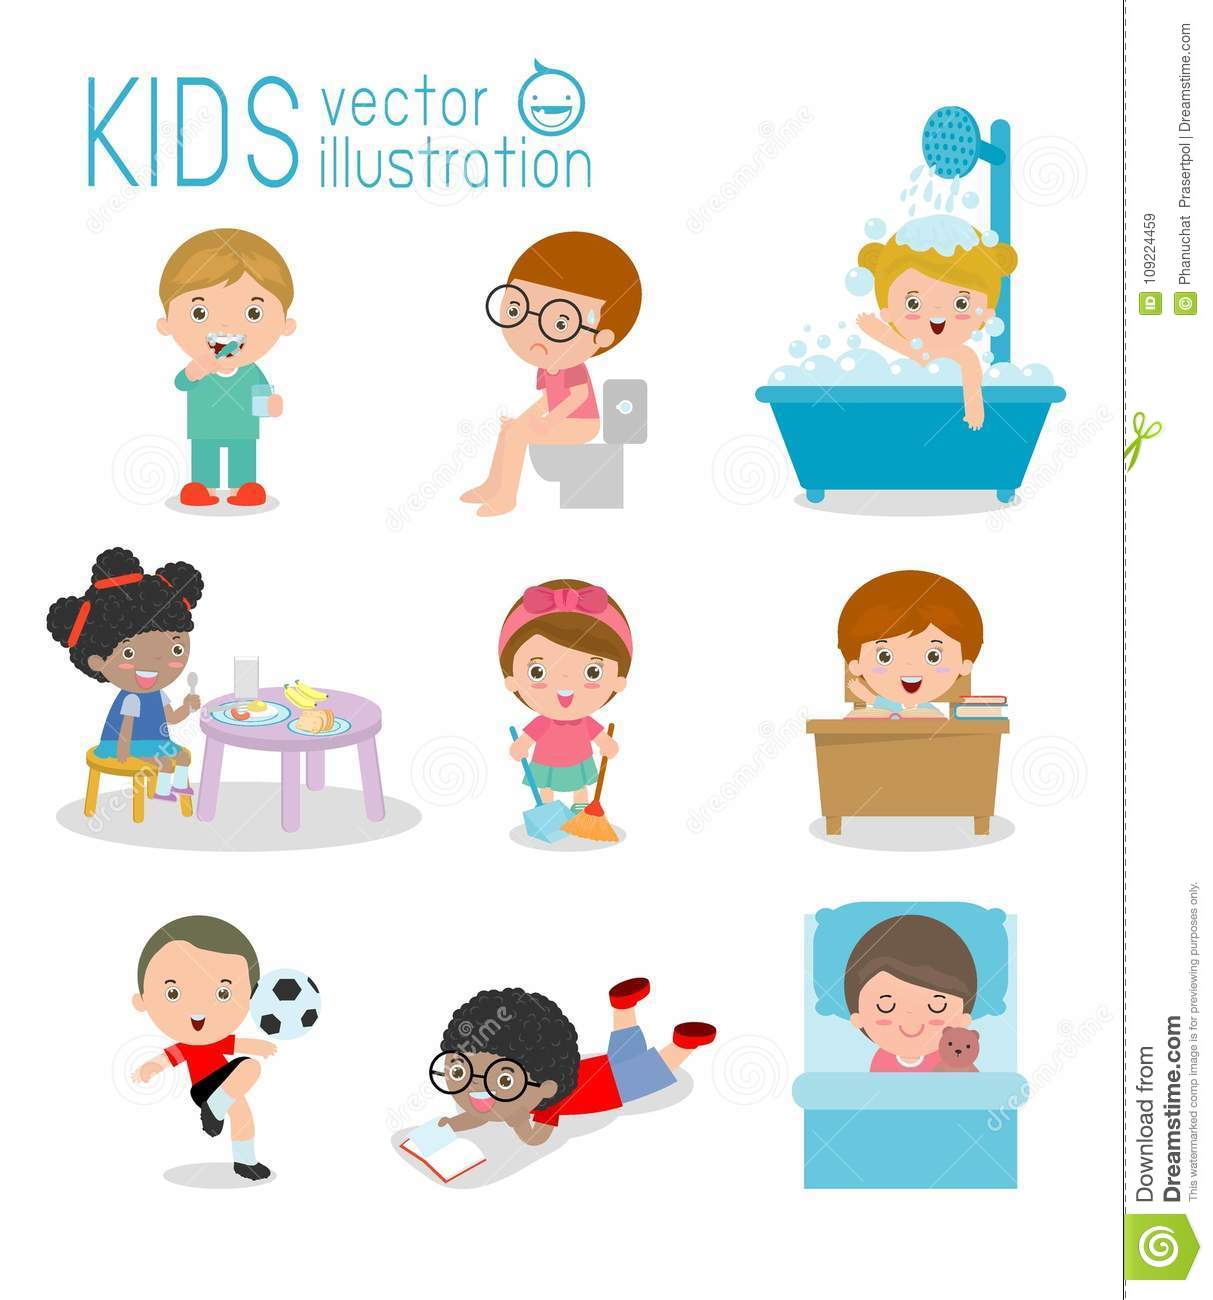 Daily Routine Daily Routine Of Happy Kids Health And Hygiene Daily Routines For Kids Daily